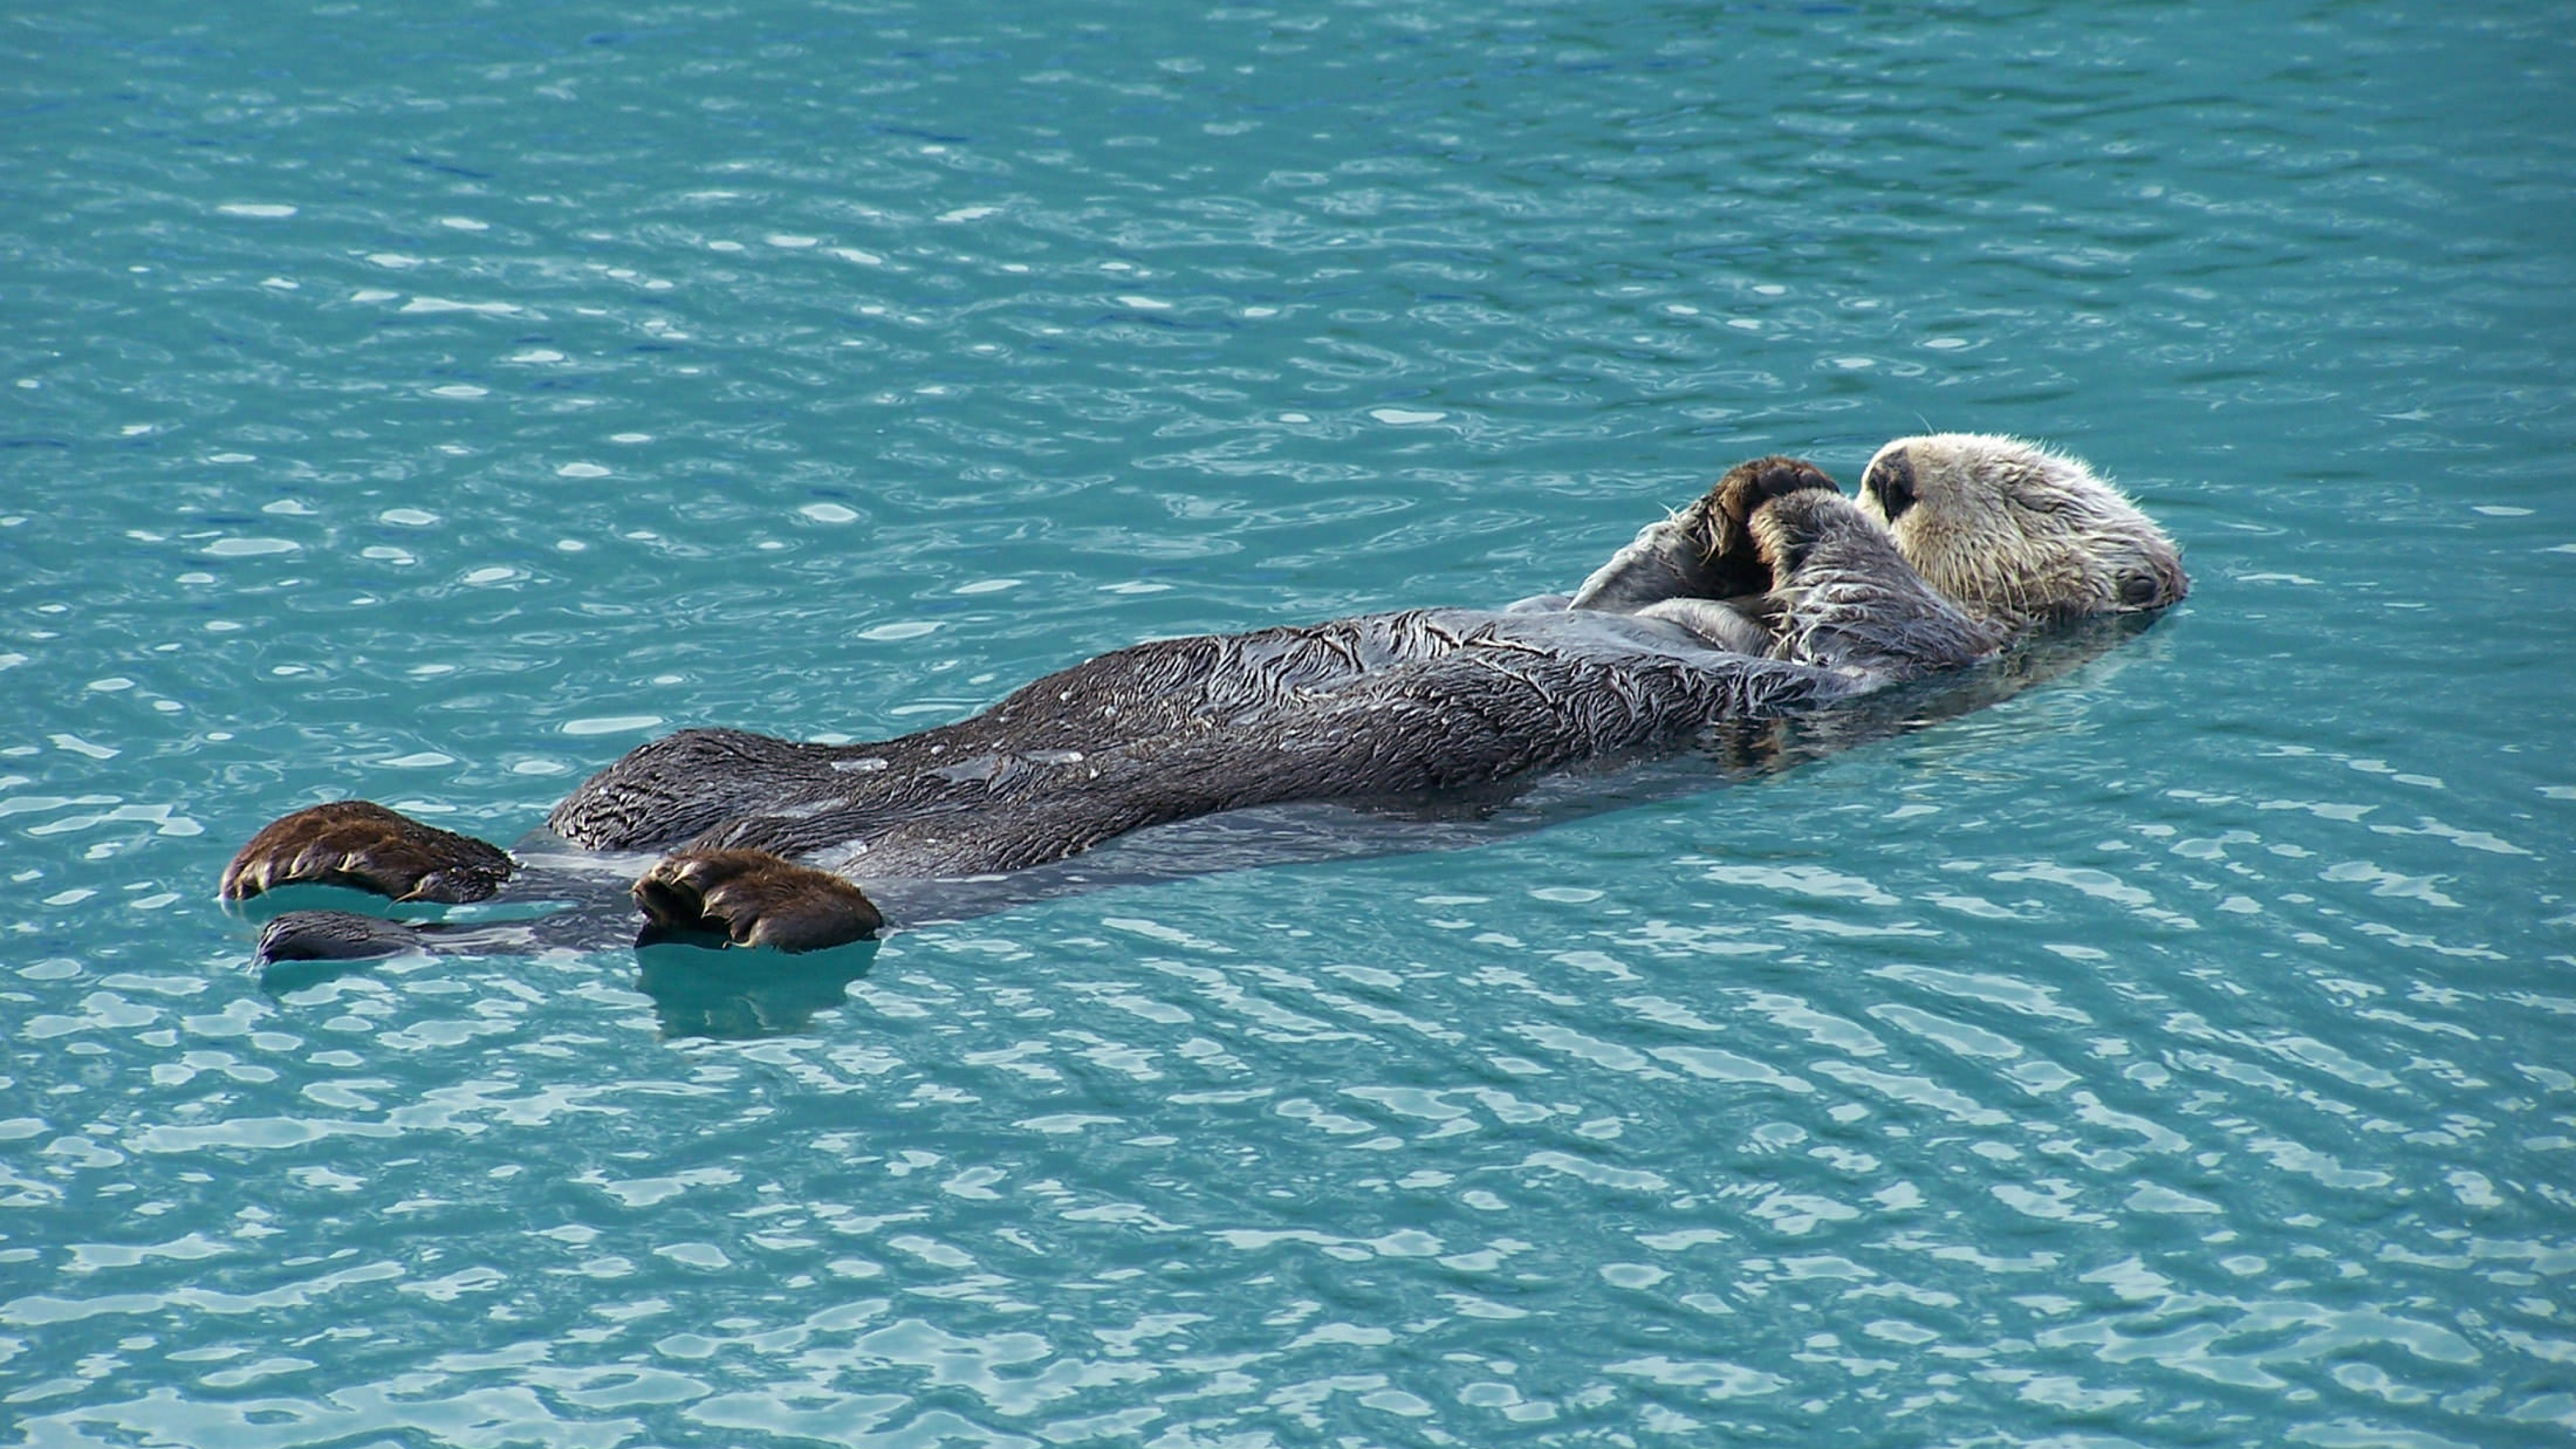 Sea otter in Alaskan arctic